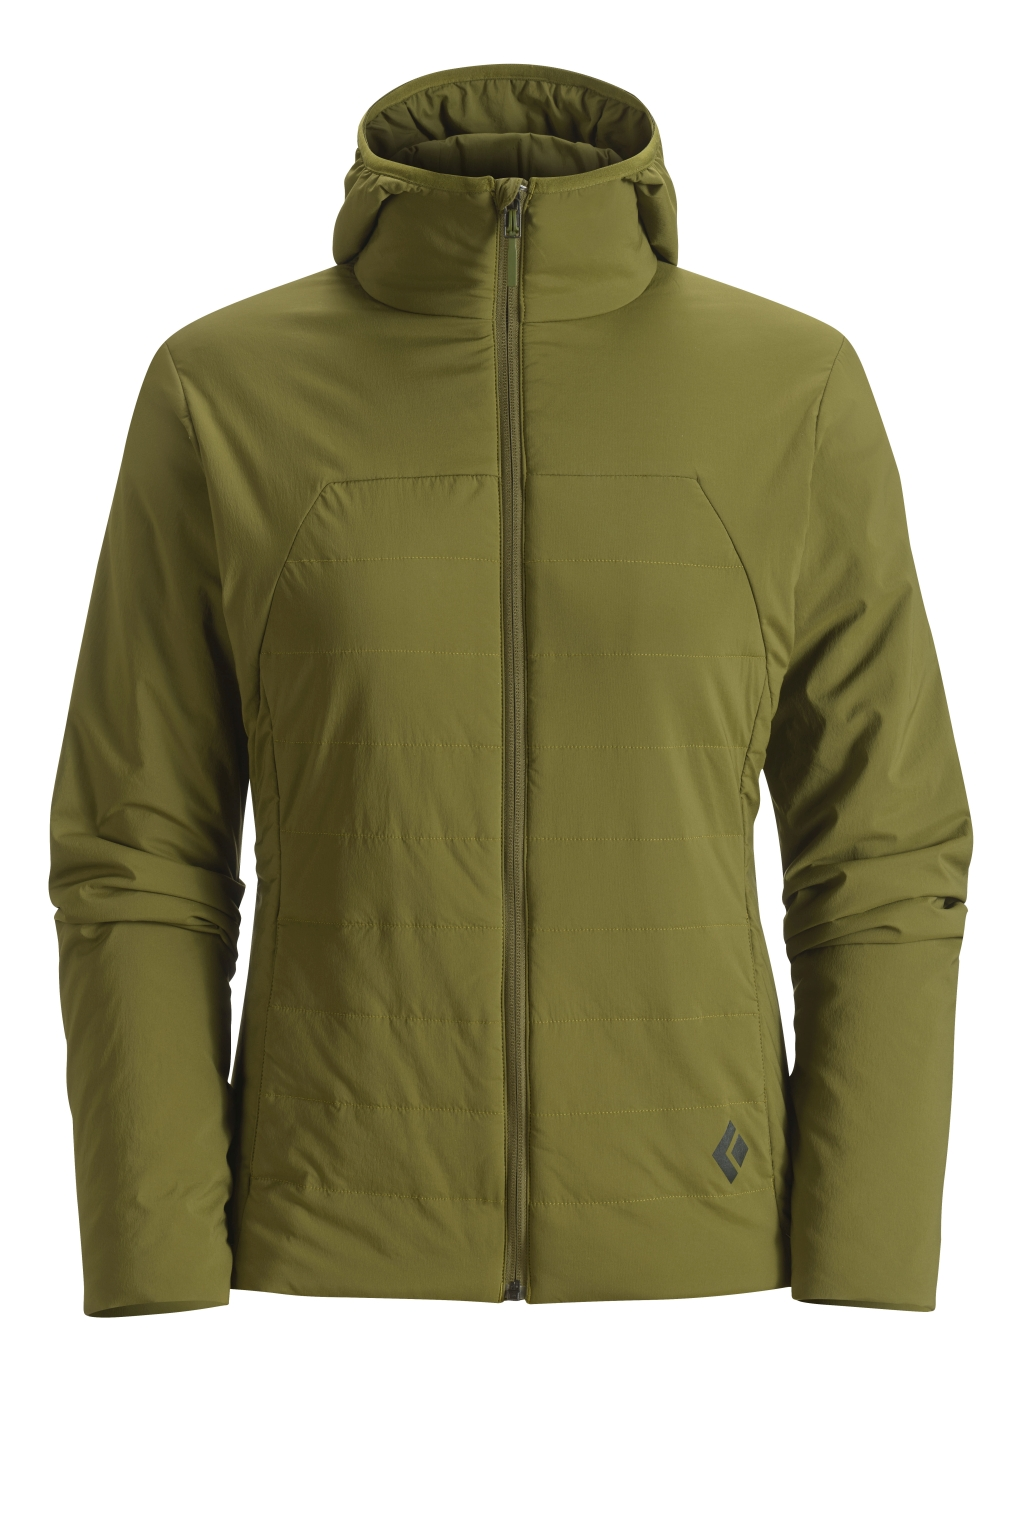 Black Diamond W's First Light Hoody Sage-30